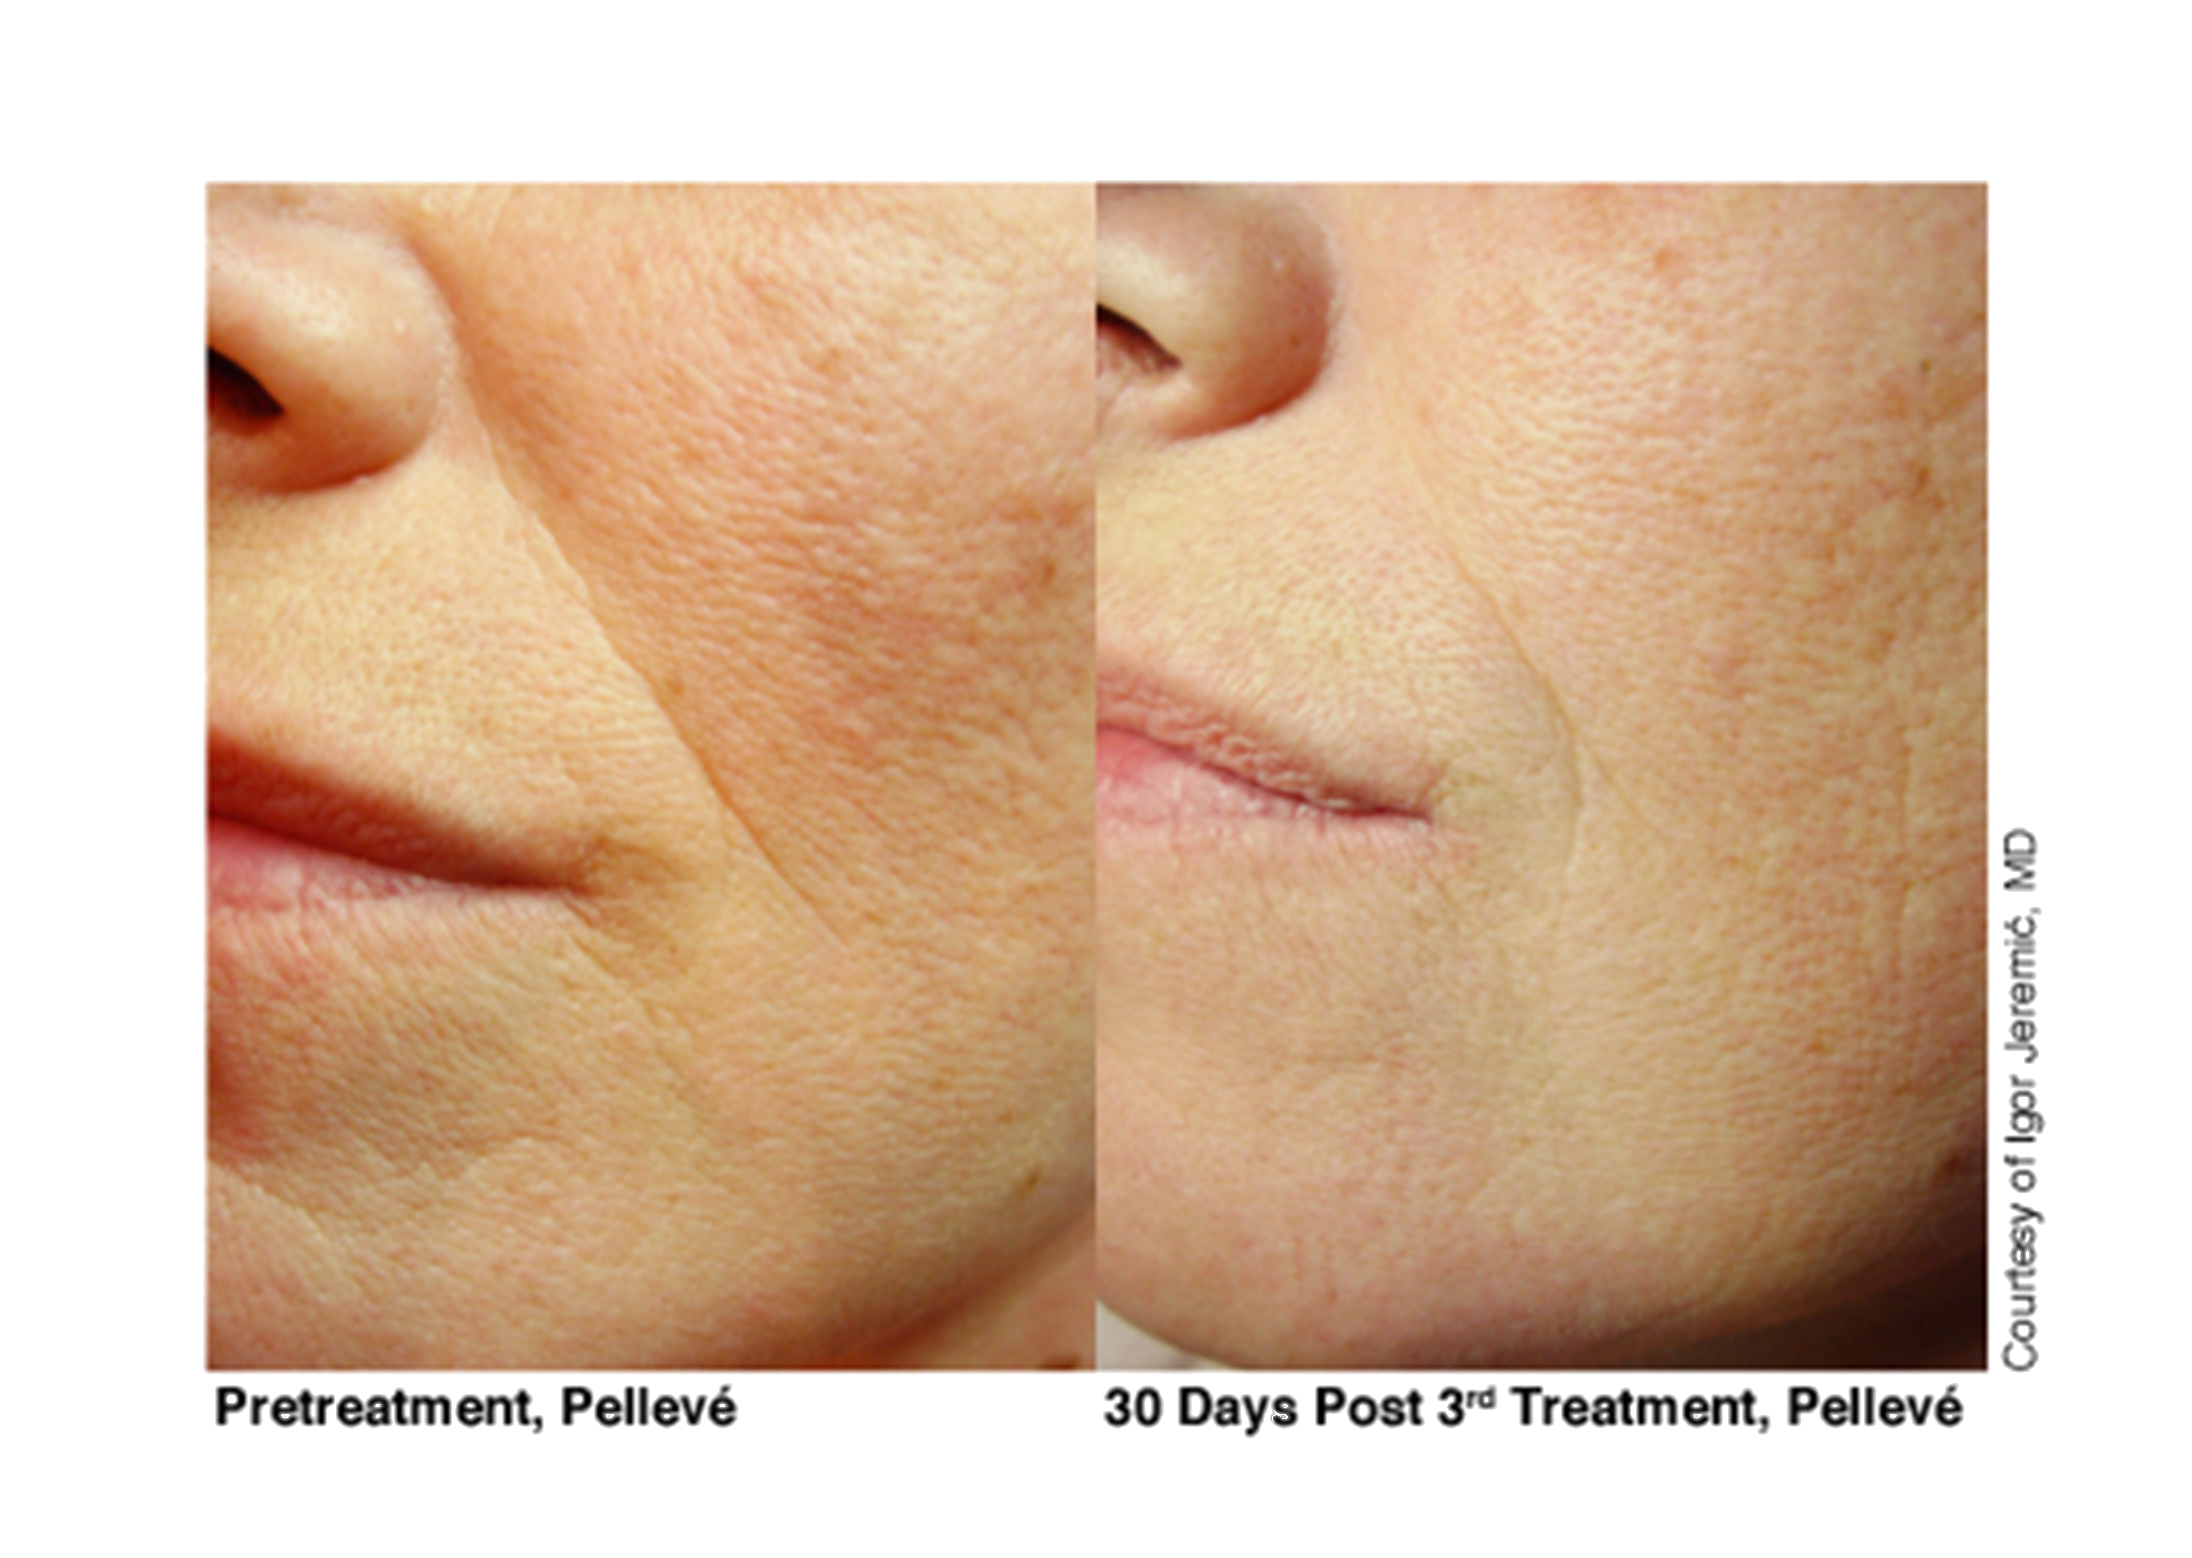 7-Pelleve Before & After Treatment Photos (image 6).png